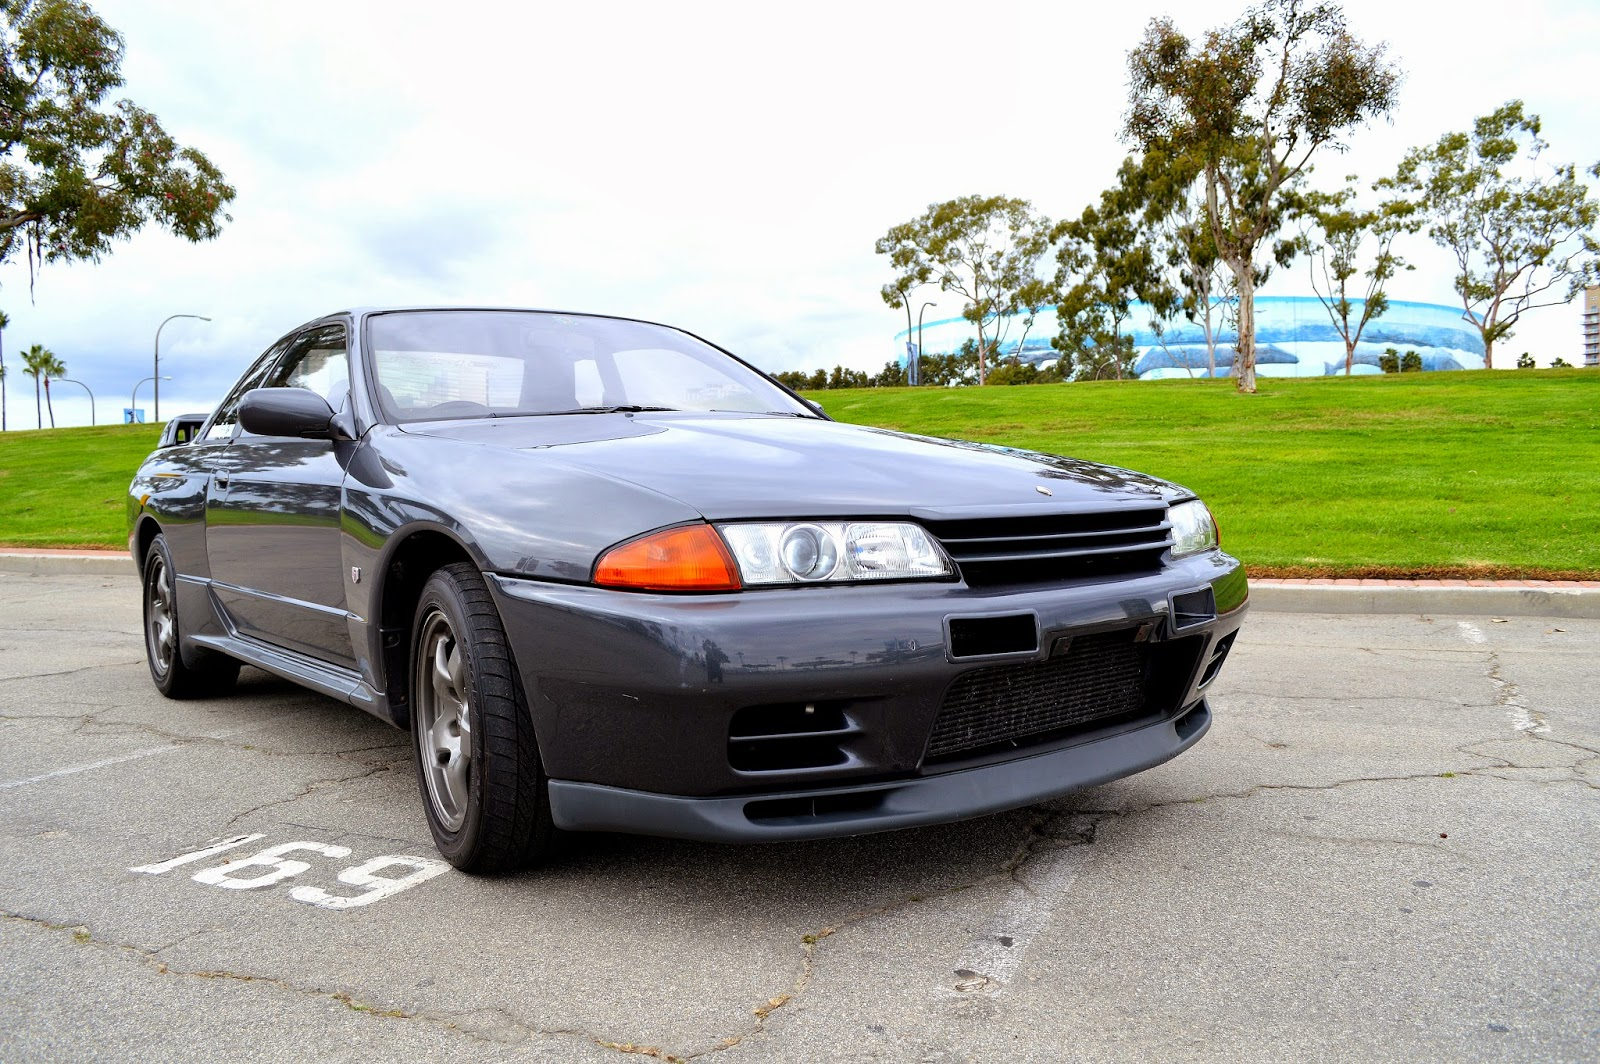 How to title and register a 1989 nissan skyline in the usa 25 year old car importation